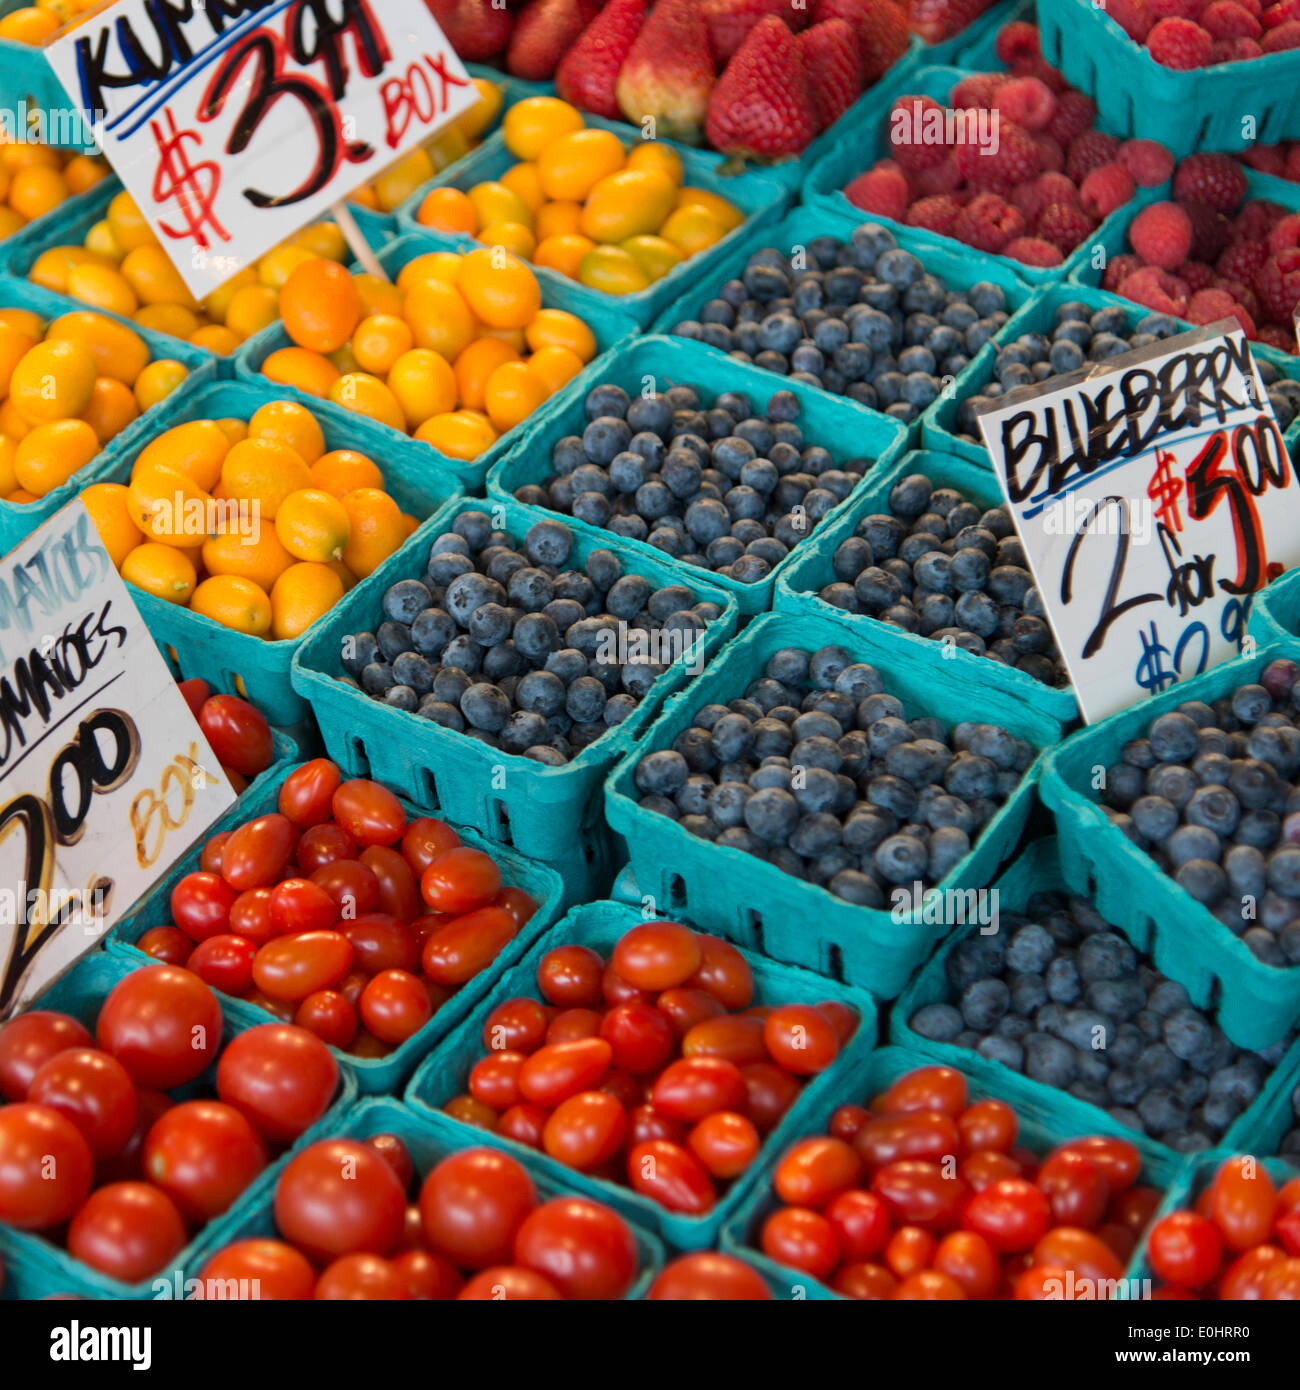 Fruits and vegetables for sale at a market stall, Pike Place Market, Seattle, Washington State, USA - Stock Image